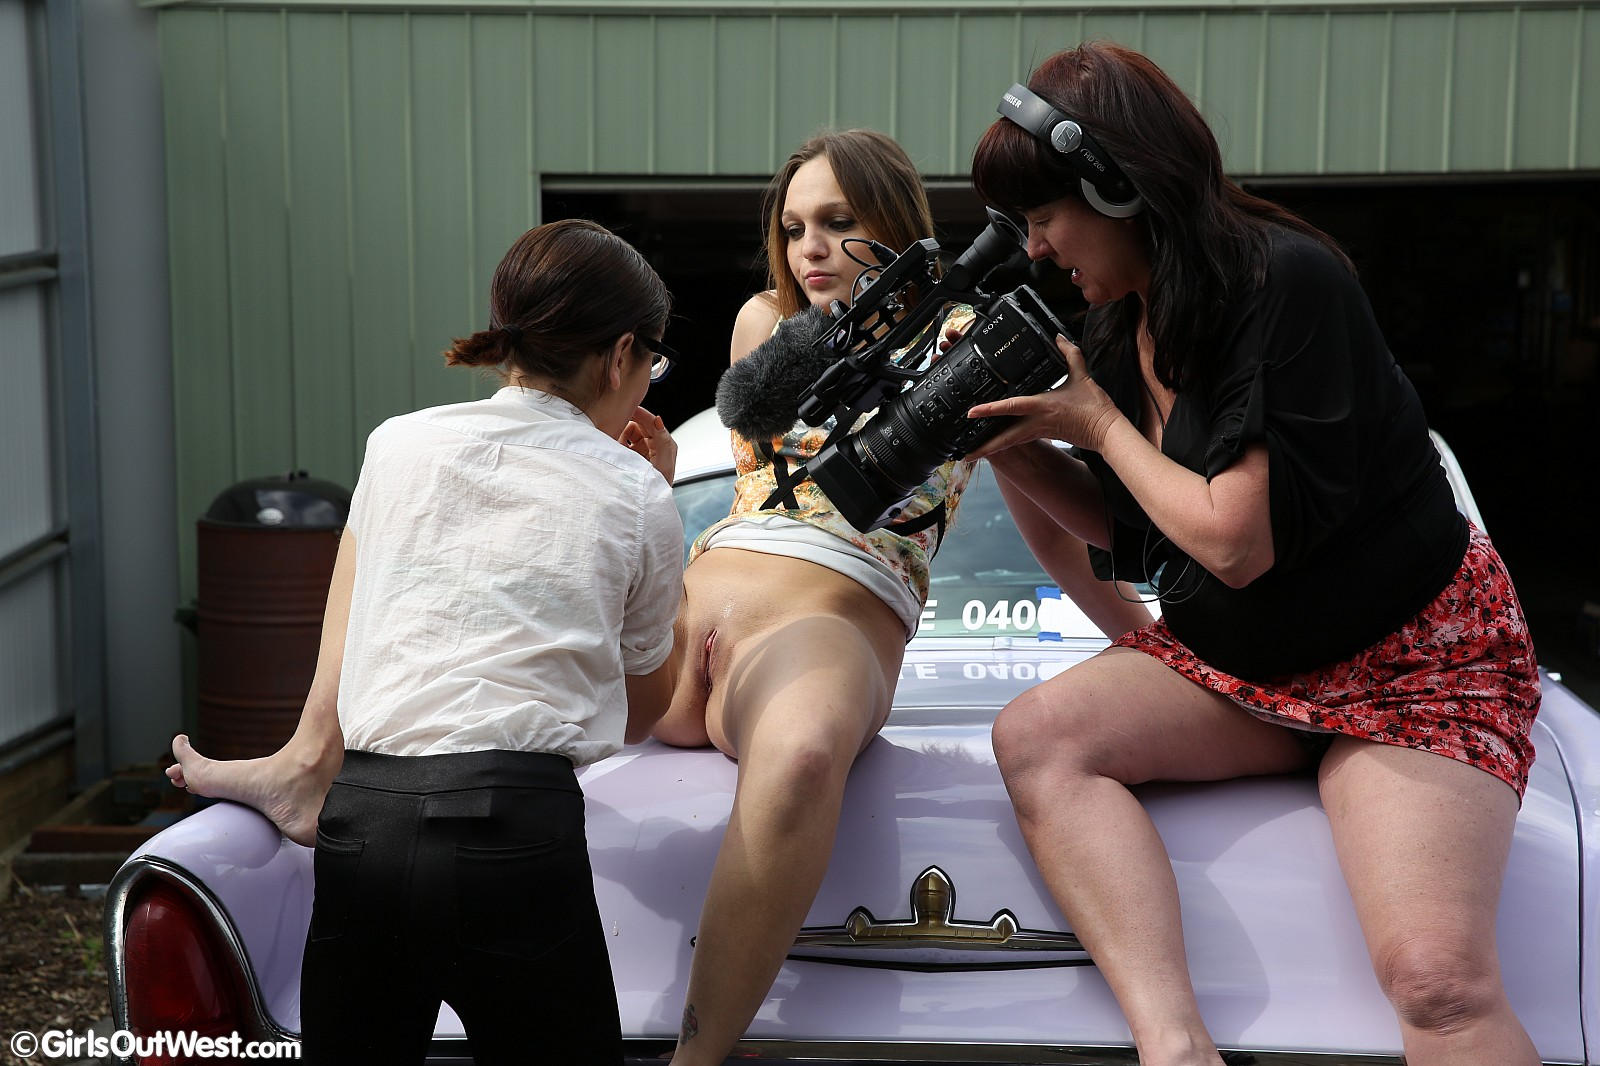 Behind The Scenes Girls - Girls-Out-West-amateur-Australian-porn-behind-the-scenes-Abduction-09 |  Girls Out West Free Stuff